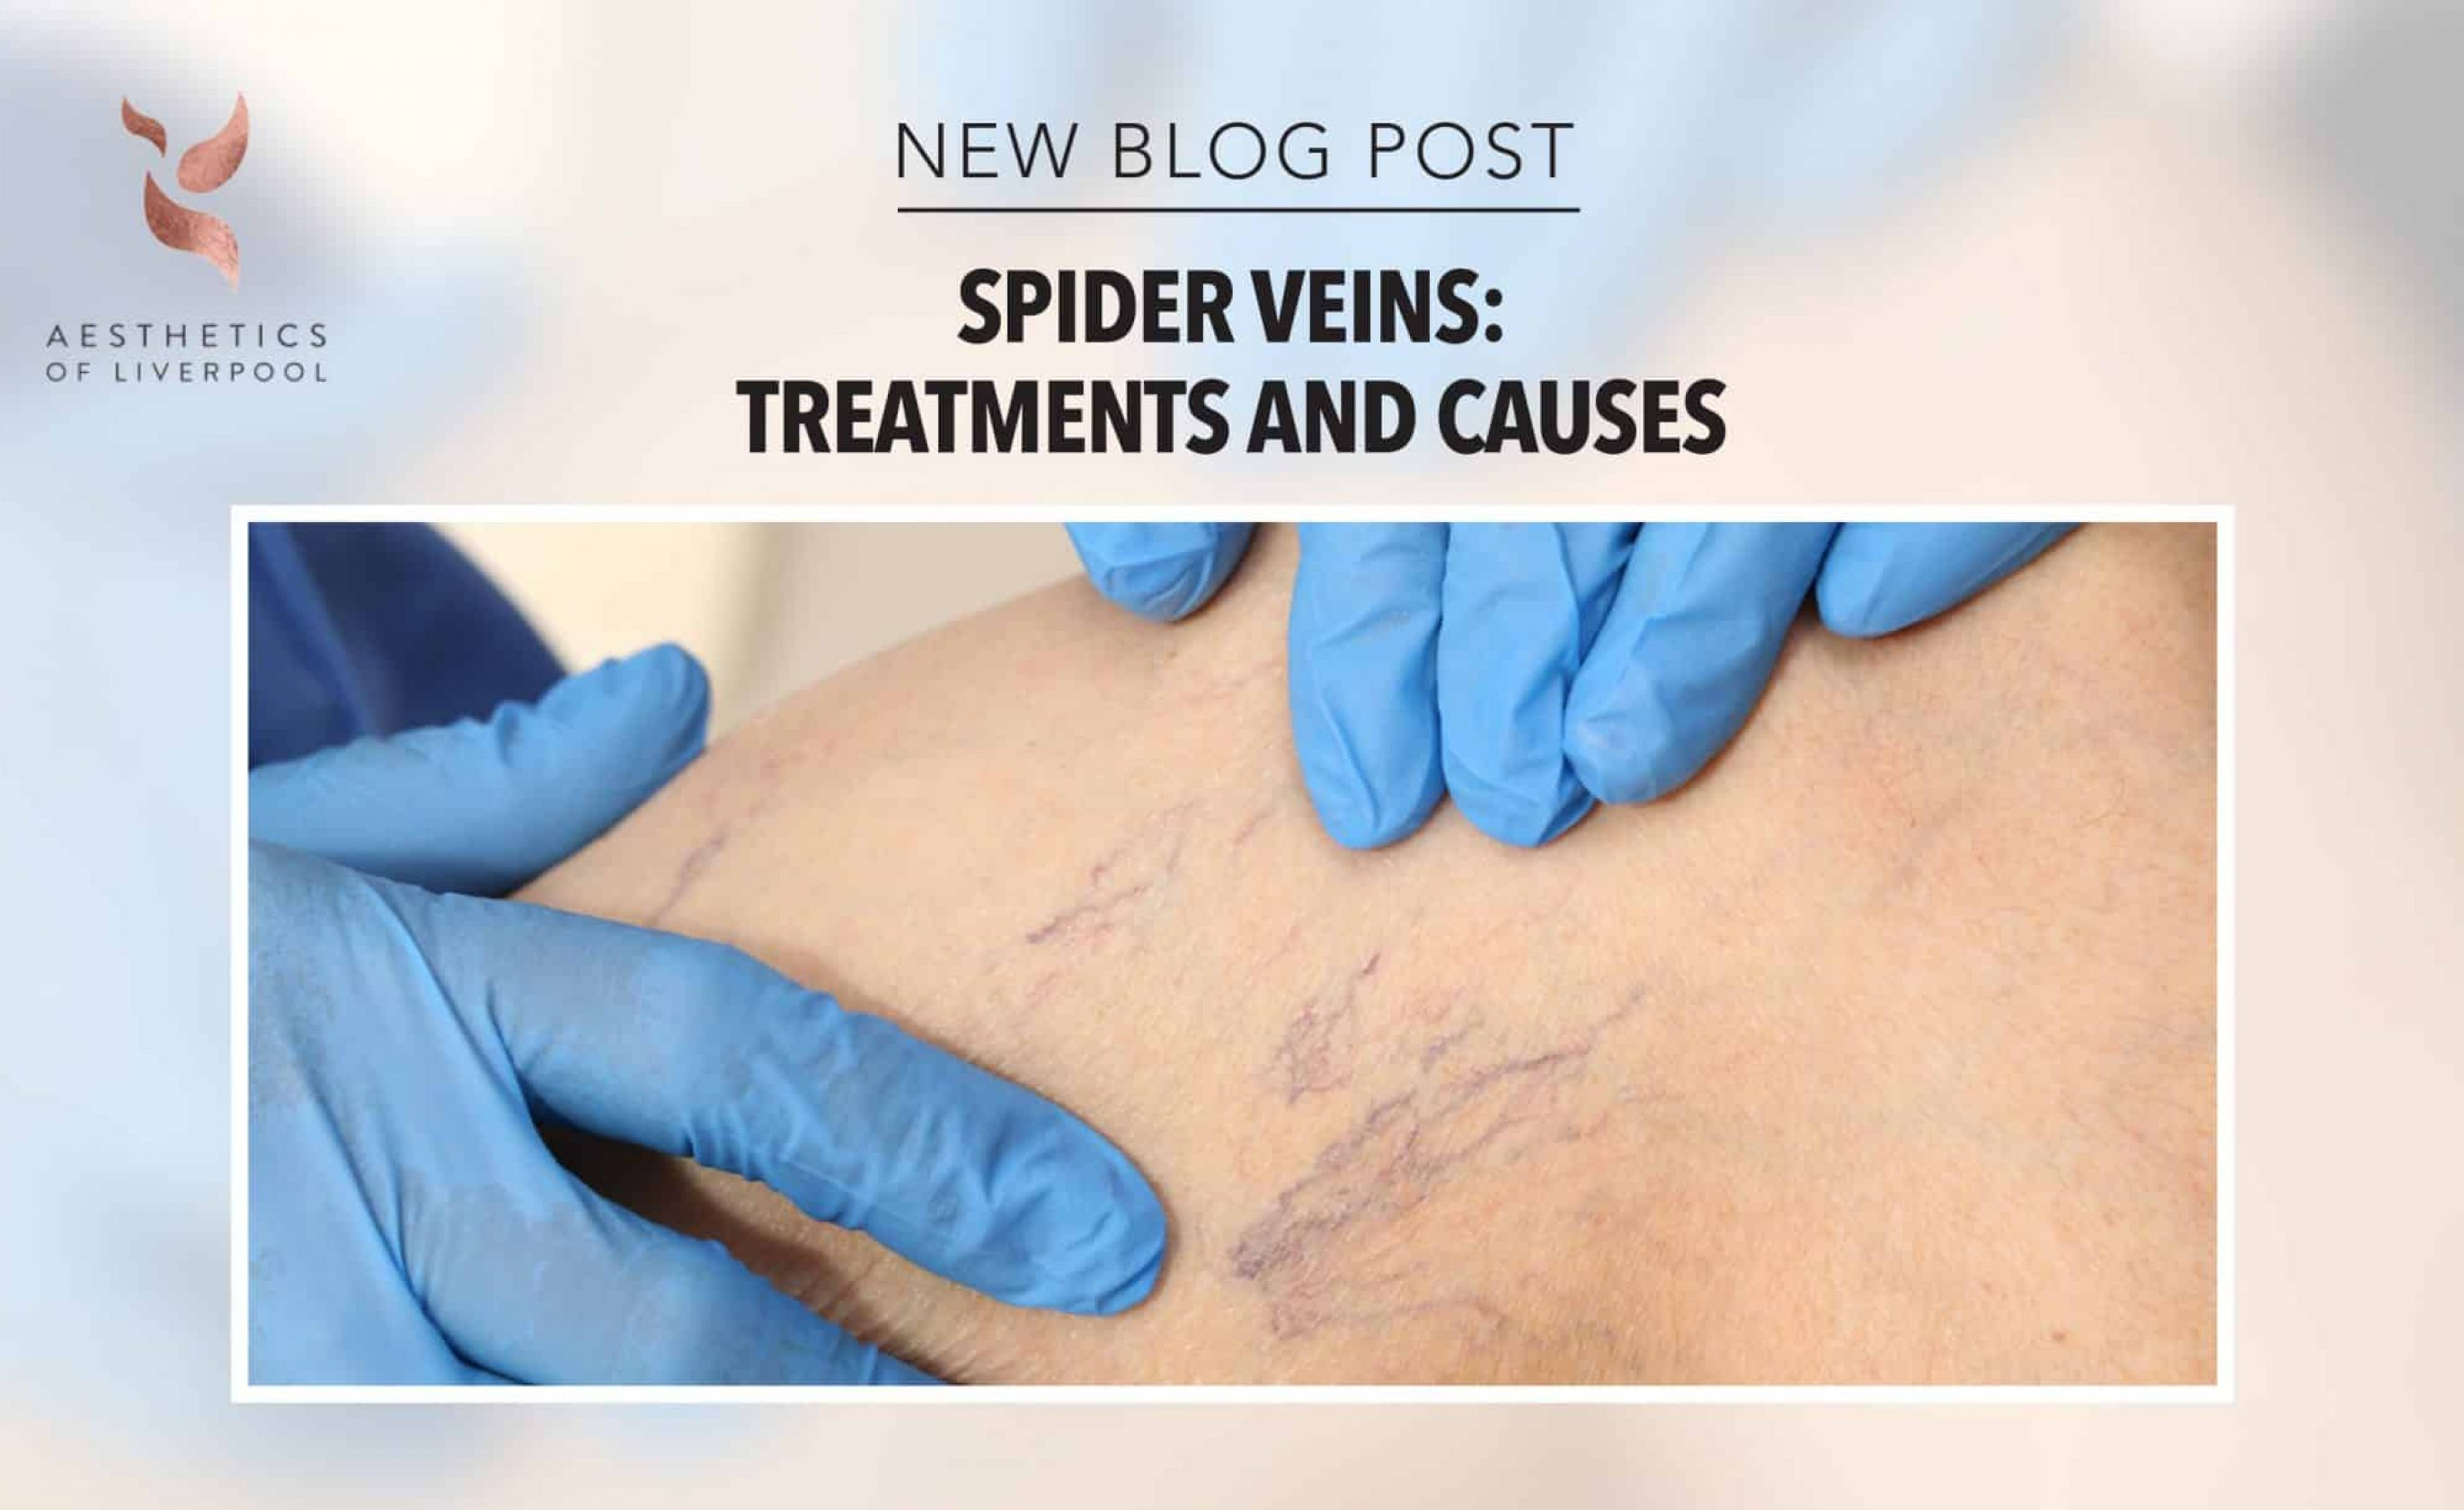 Spider Veins: Treatments and Causes